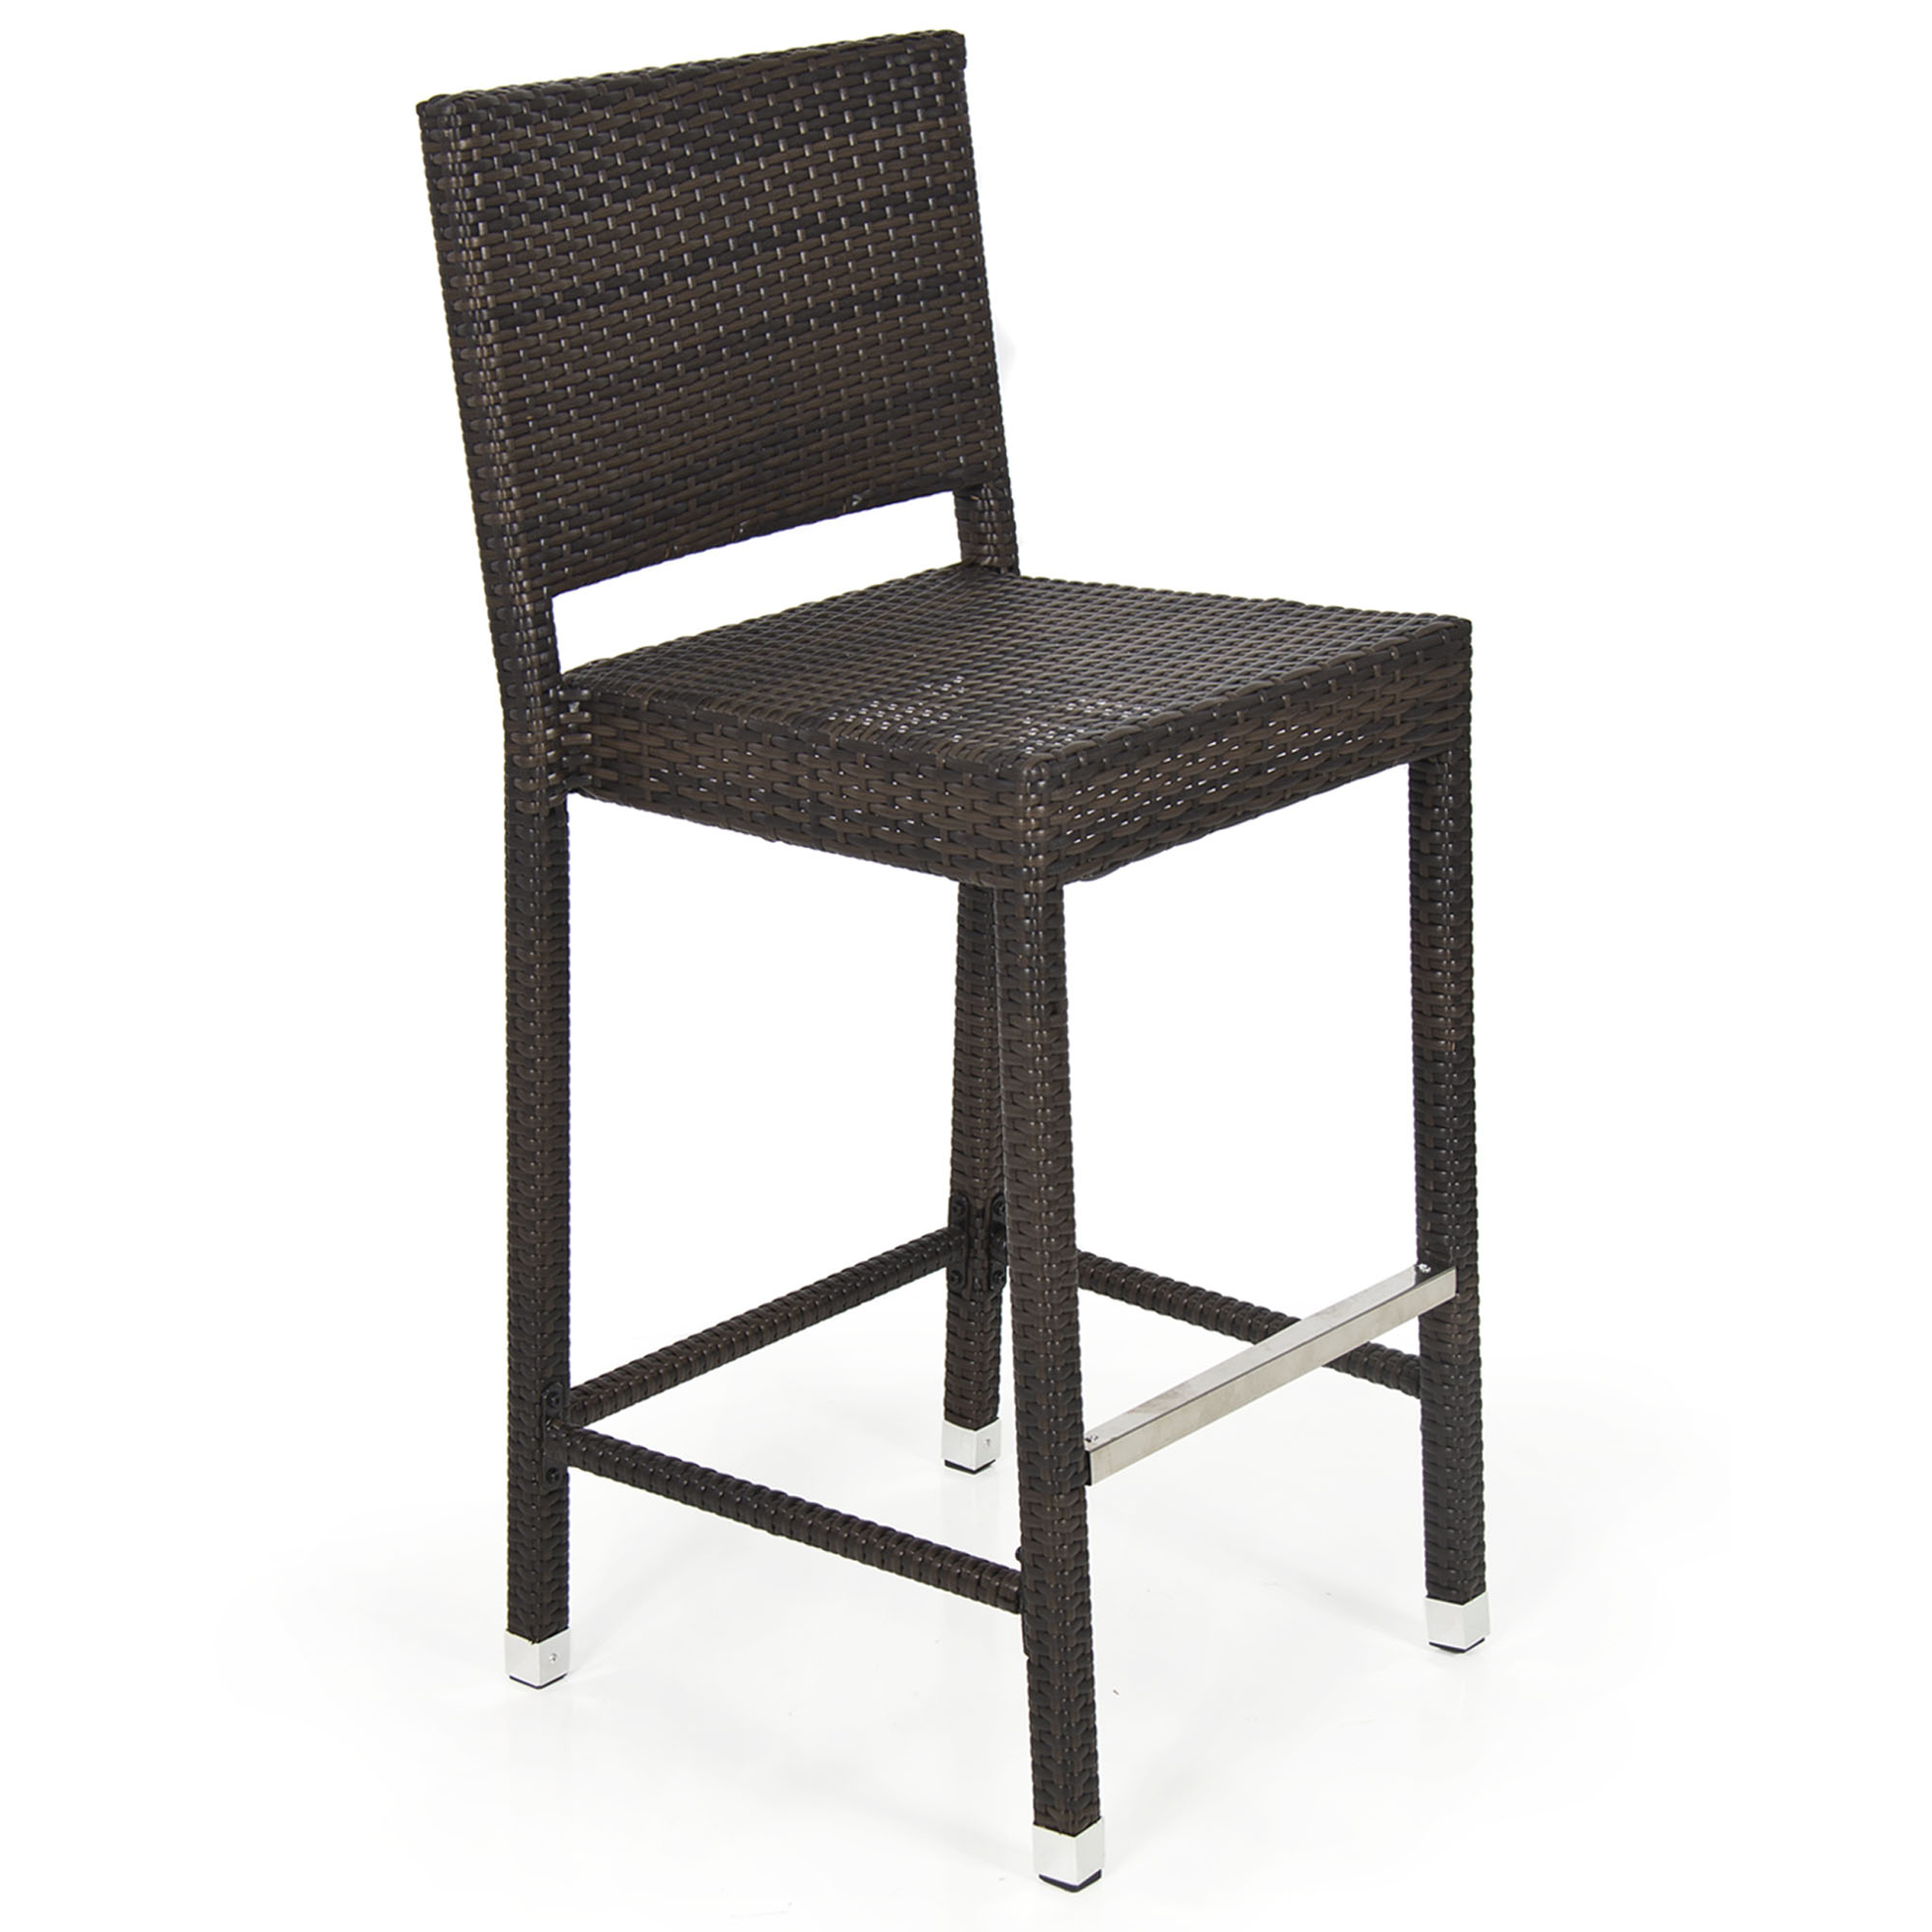 Outdoor Wicker Barstool All Weather Brown Patio Furniture New Bar